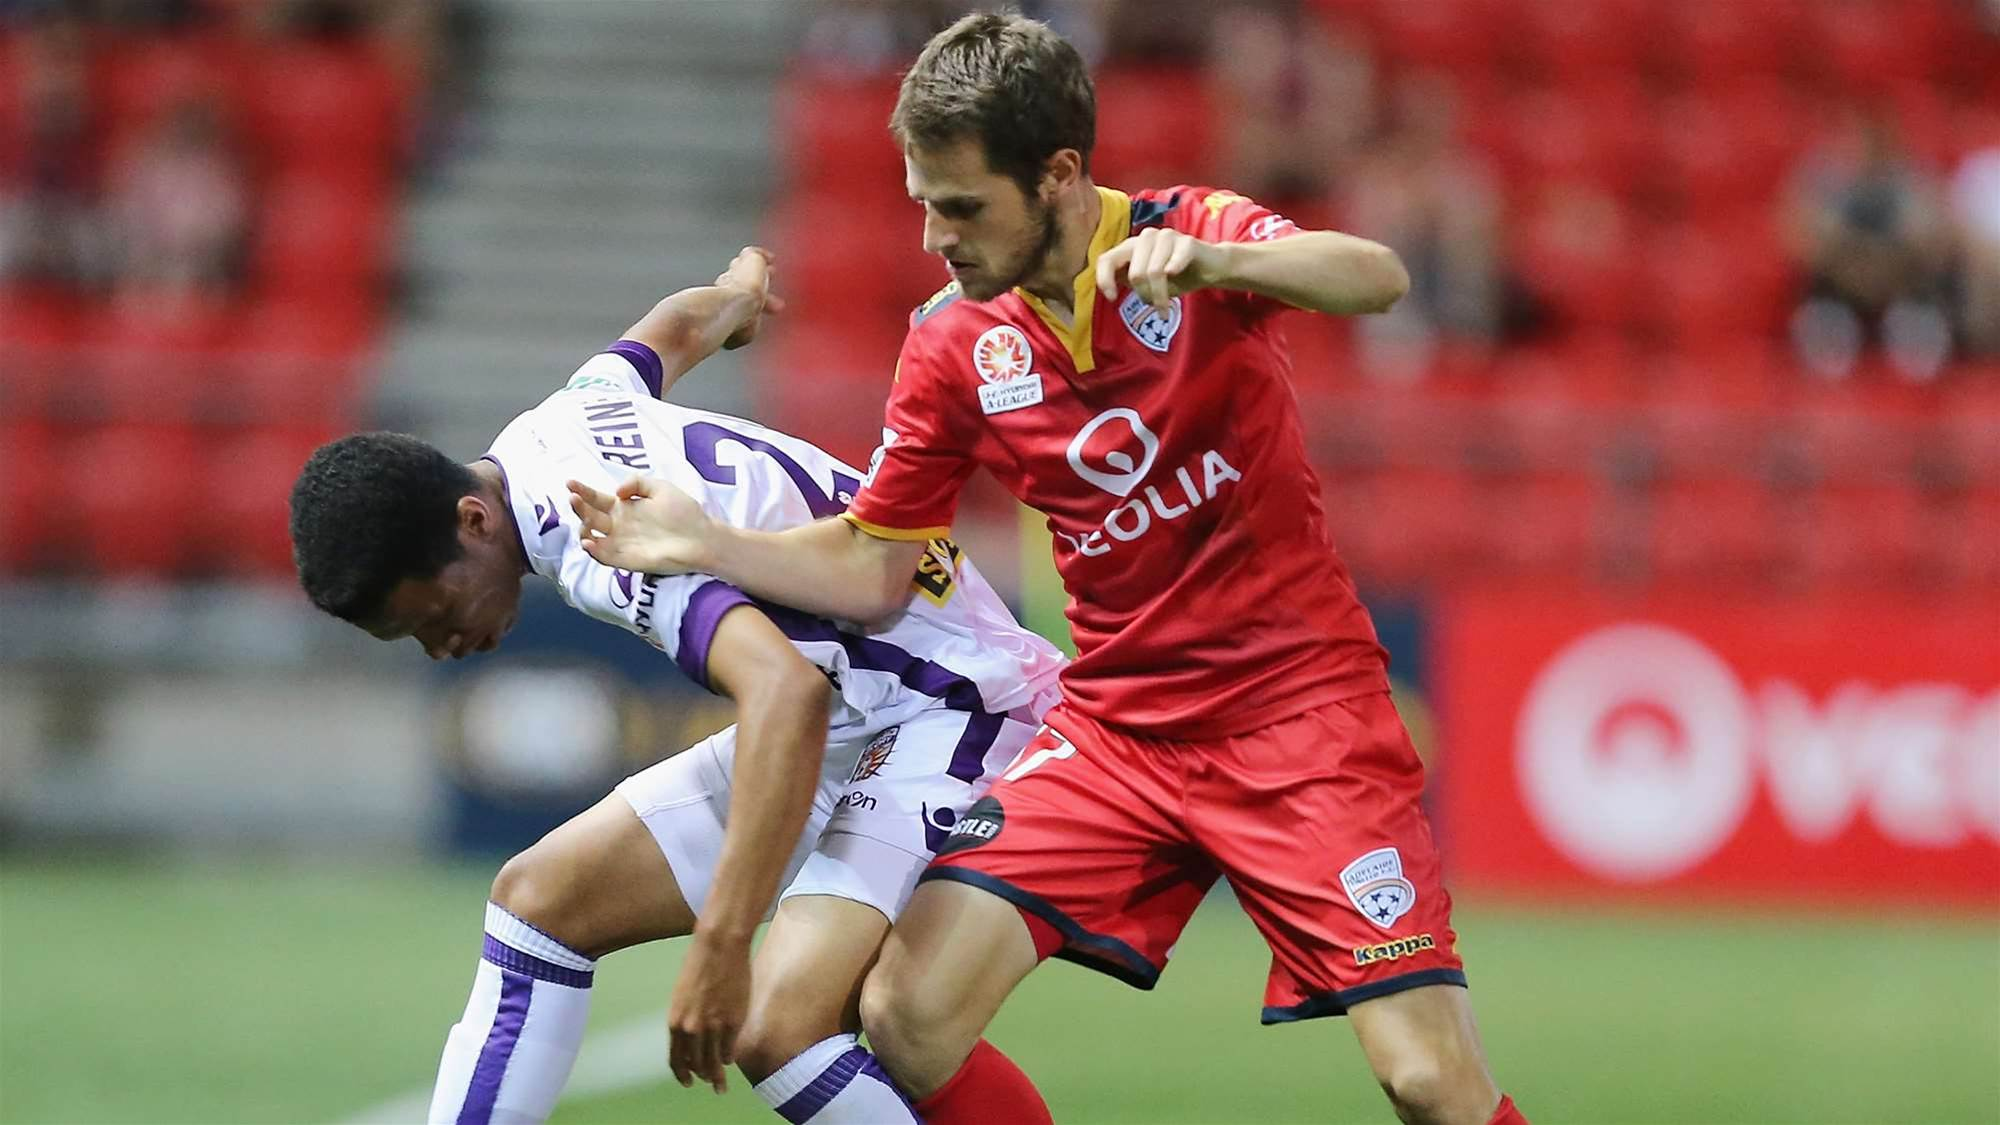 Dugandzic: From A-League to NPL2